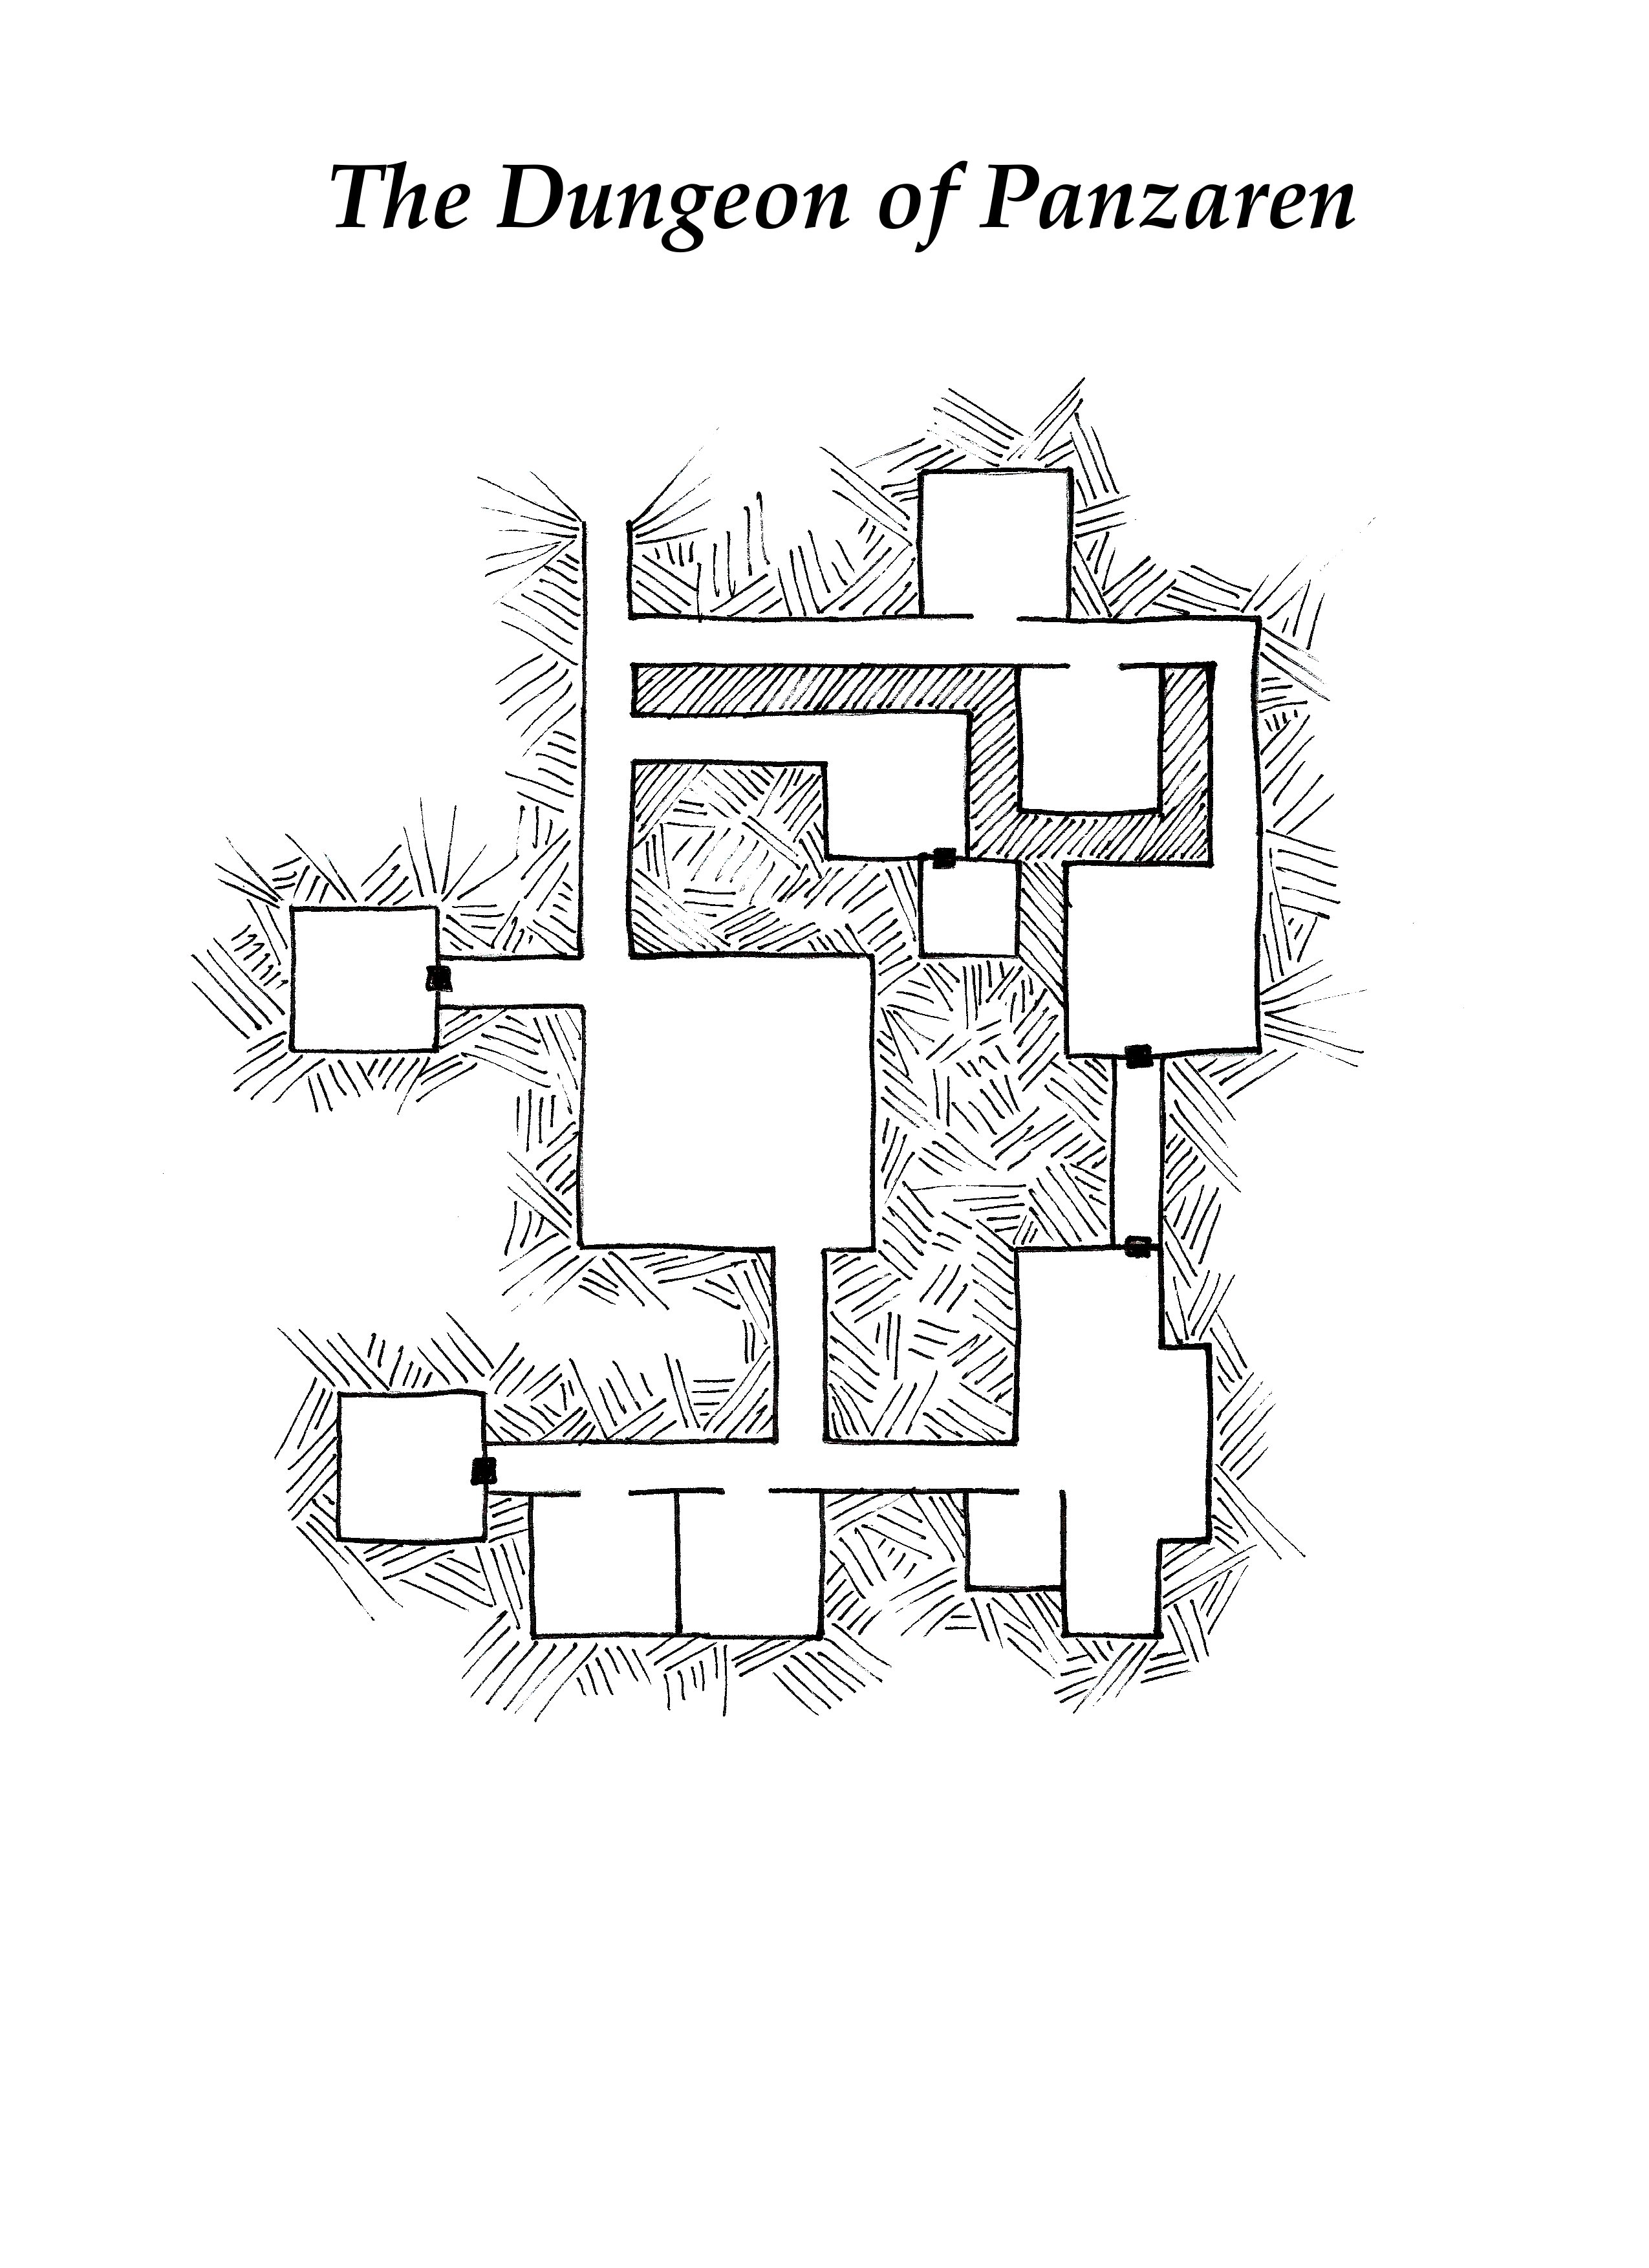 Dungeon Maps for Your RPG Campaigns | dicegeeks